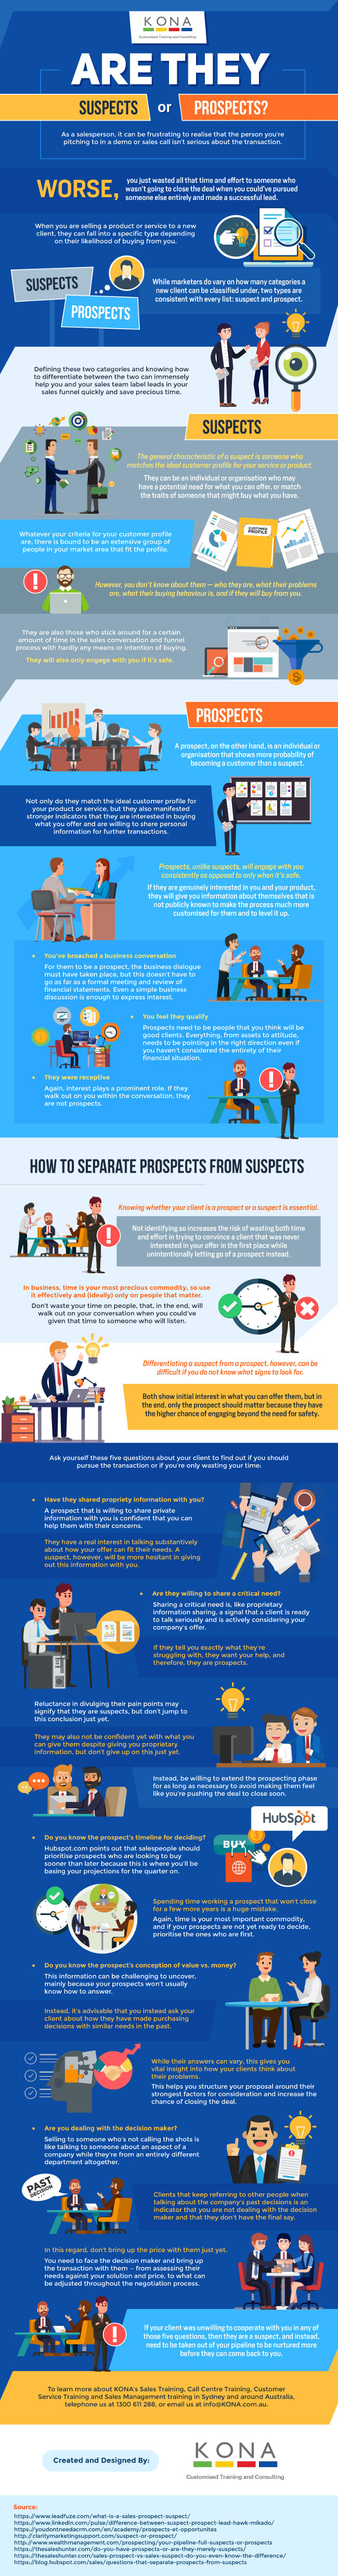 Suspects vs Prospects: Which One Are They? [Infographic]